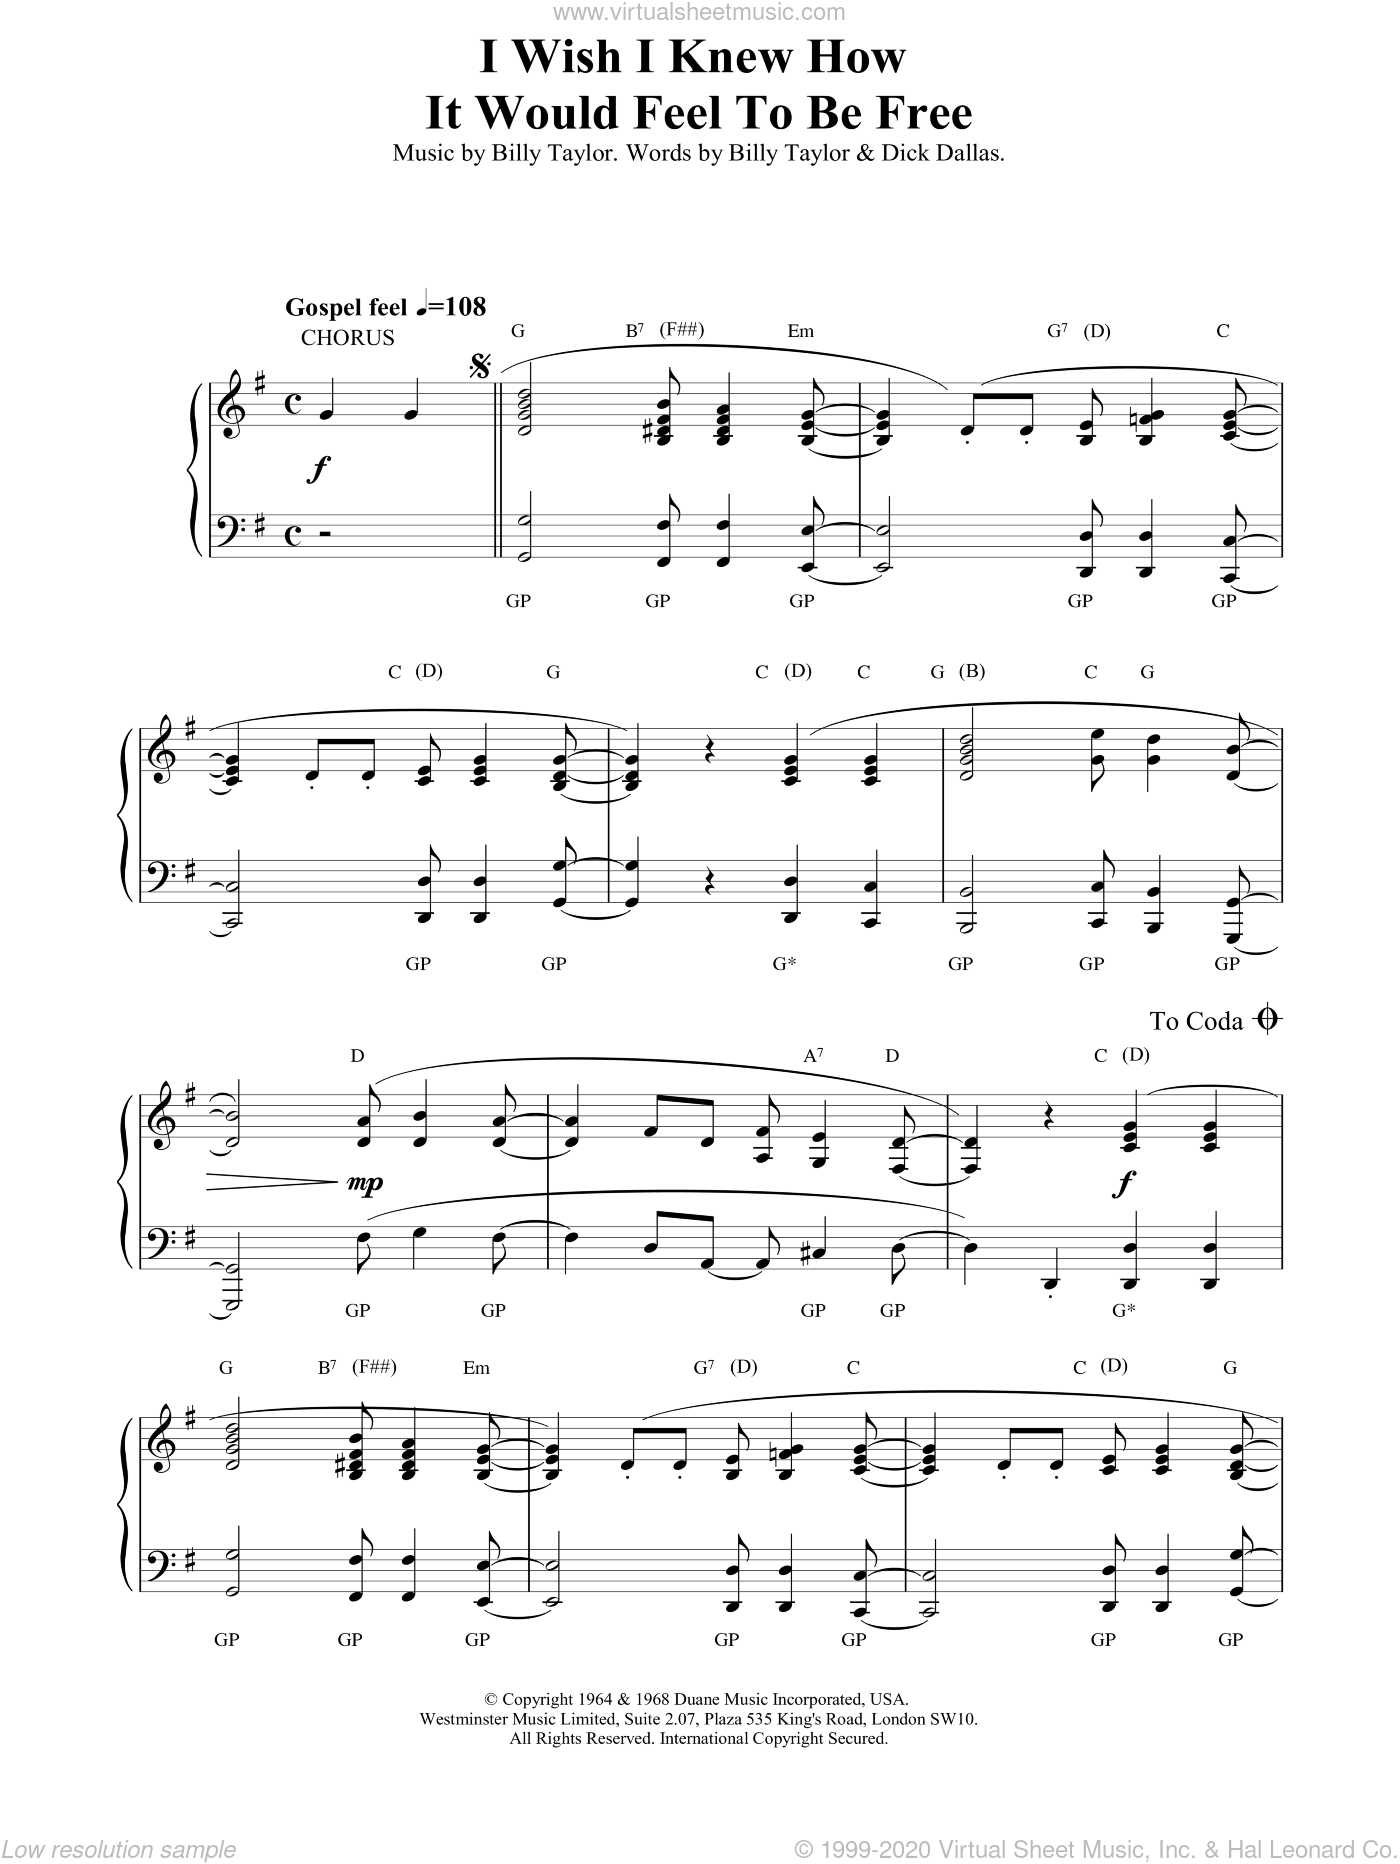 I Wish I Knew How It Would Feel To Be Free sheet music for piano solo by Billy Taylor and Miscellaneous. Score Image Preview.